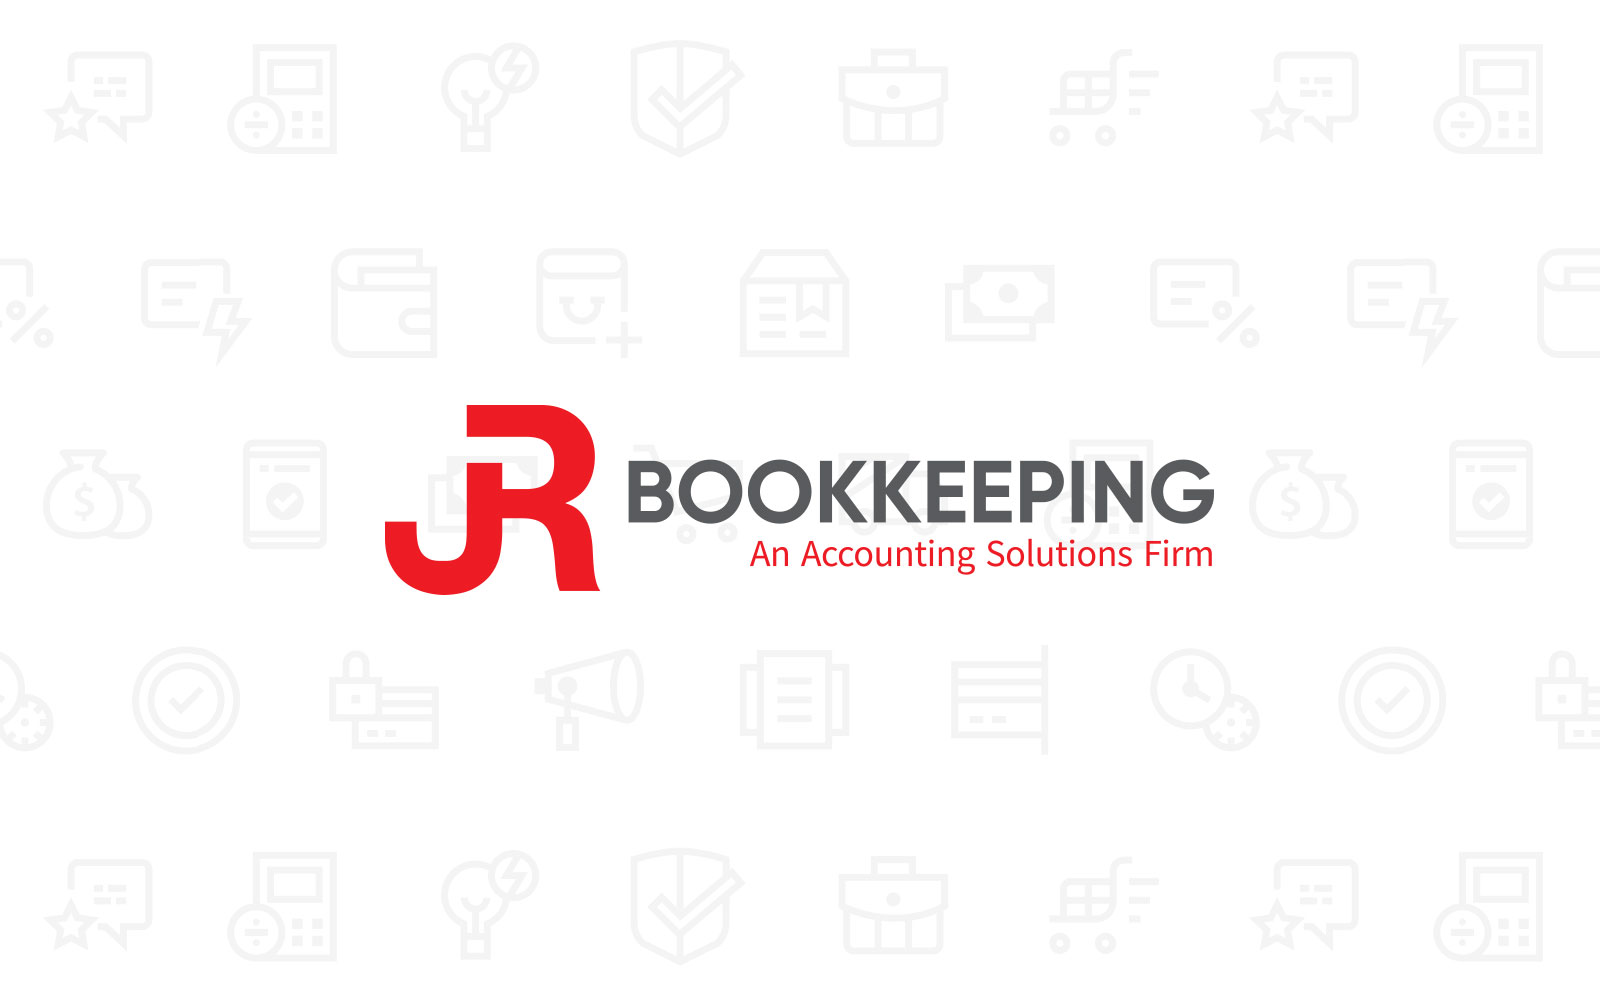 JR-Bookkeeping-Rebrand-logo-redesign-full